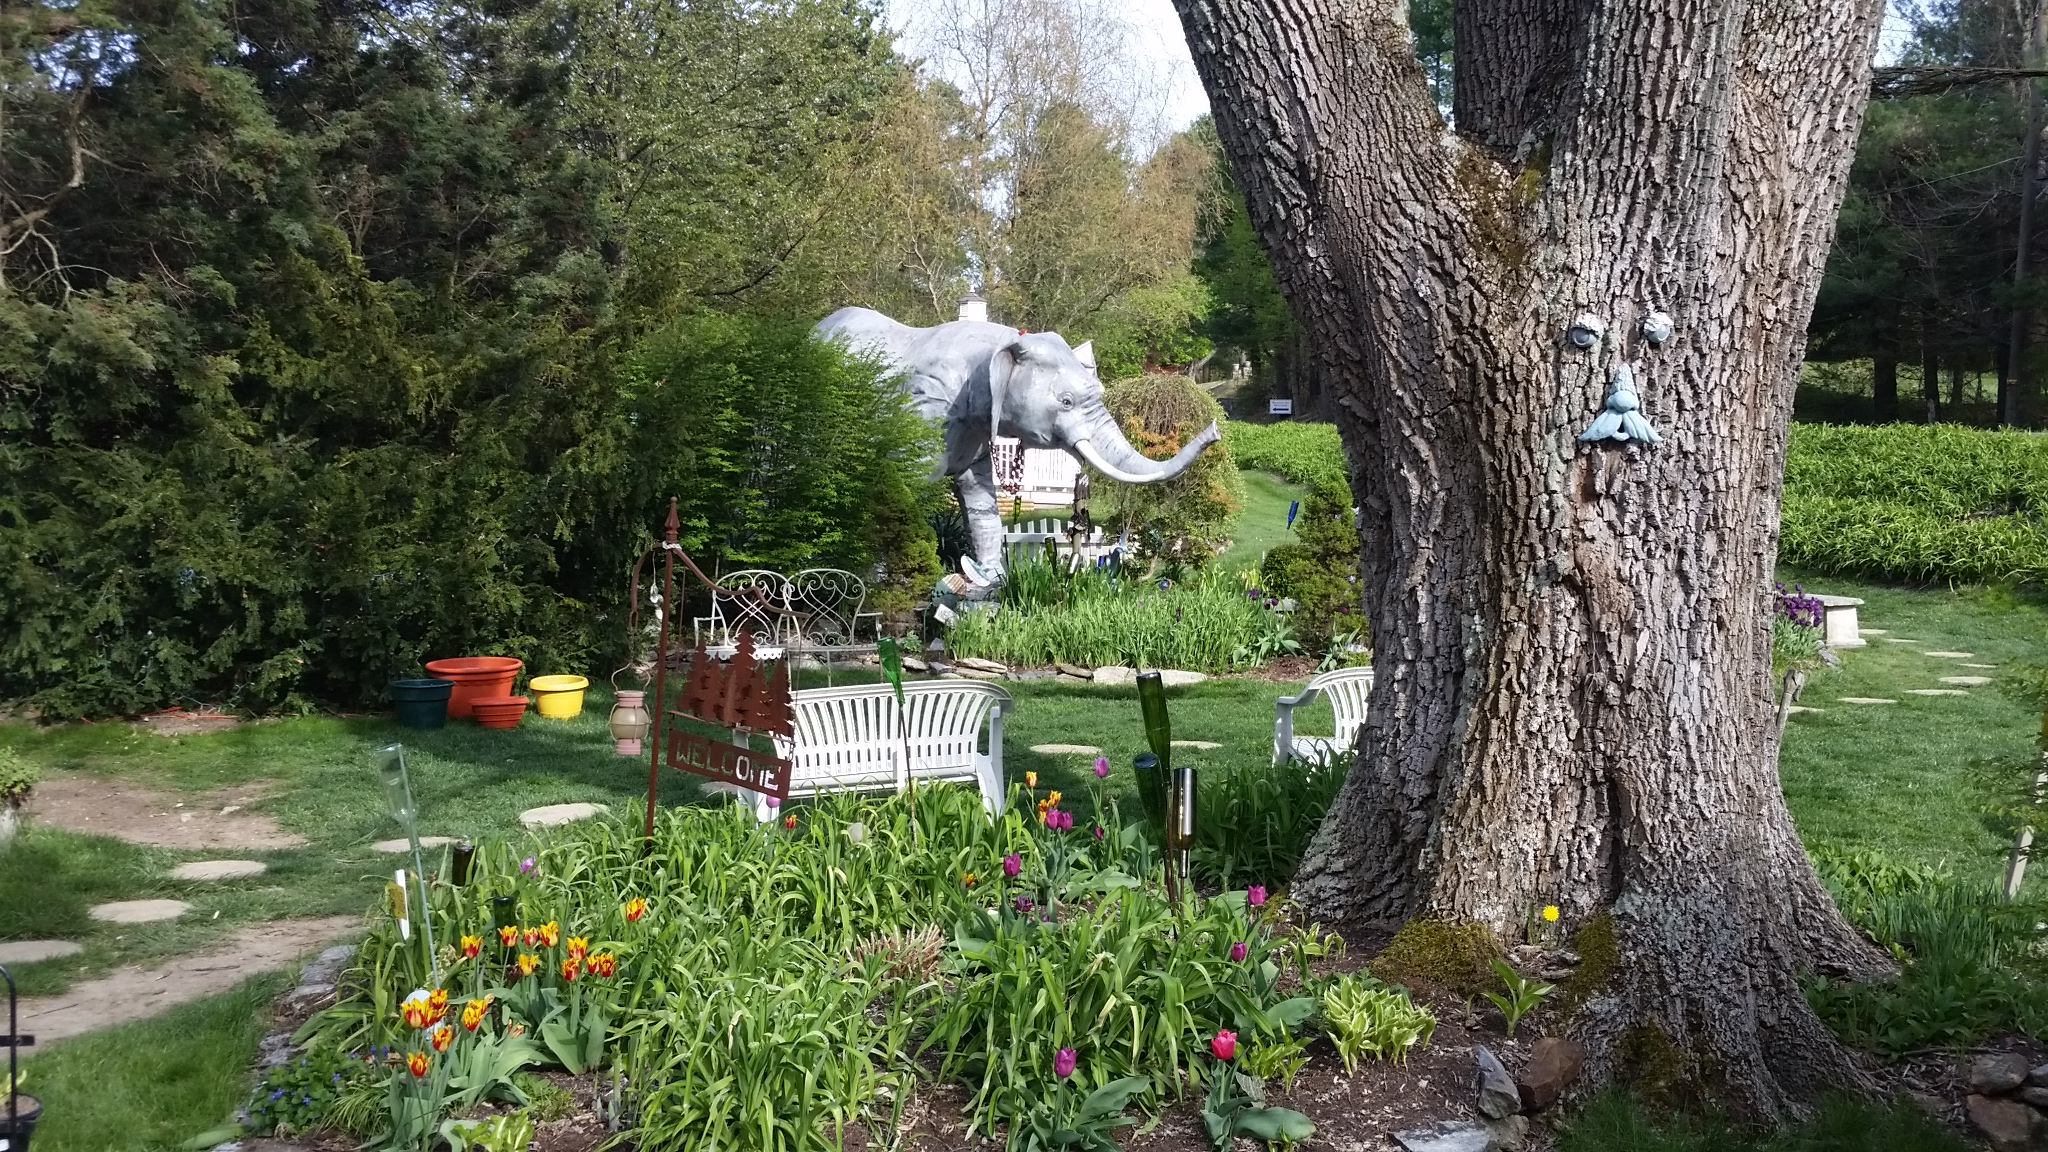 The garden with large elephants at Mister Ed's Elephant Museum and Candy Emporium near Gettysburg